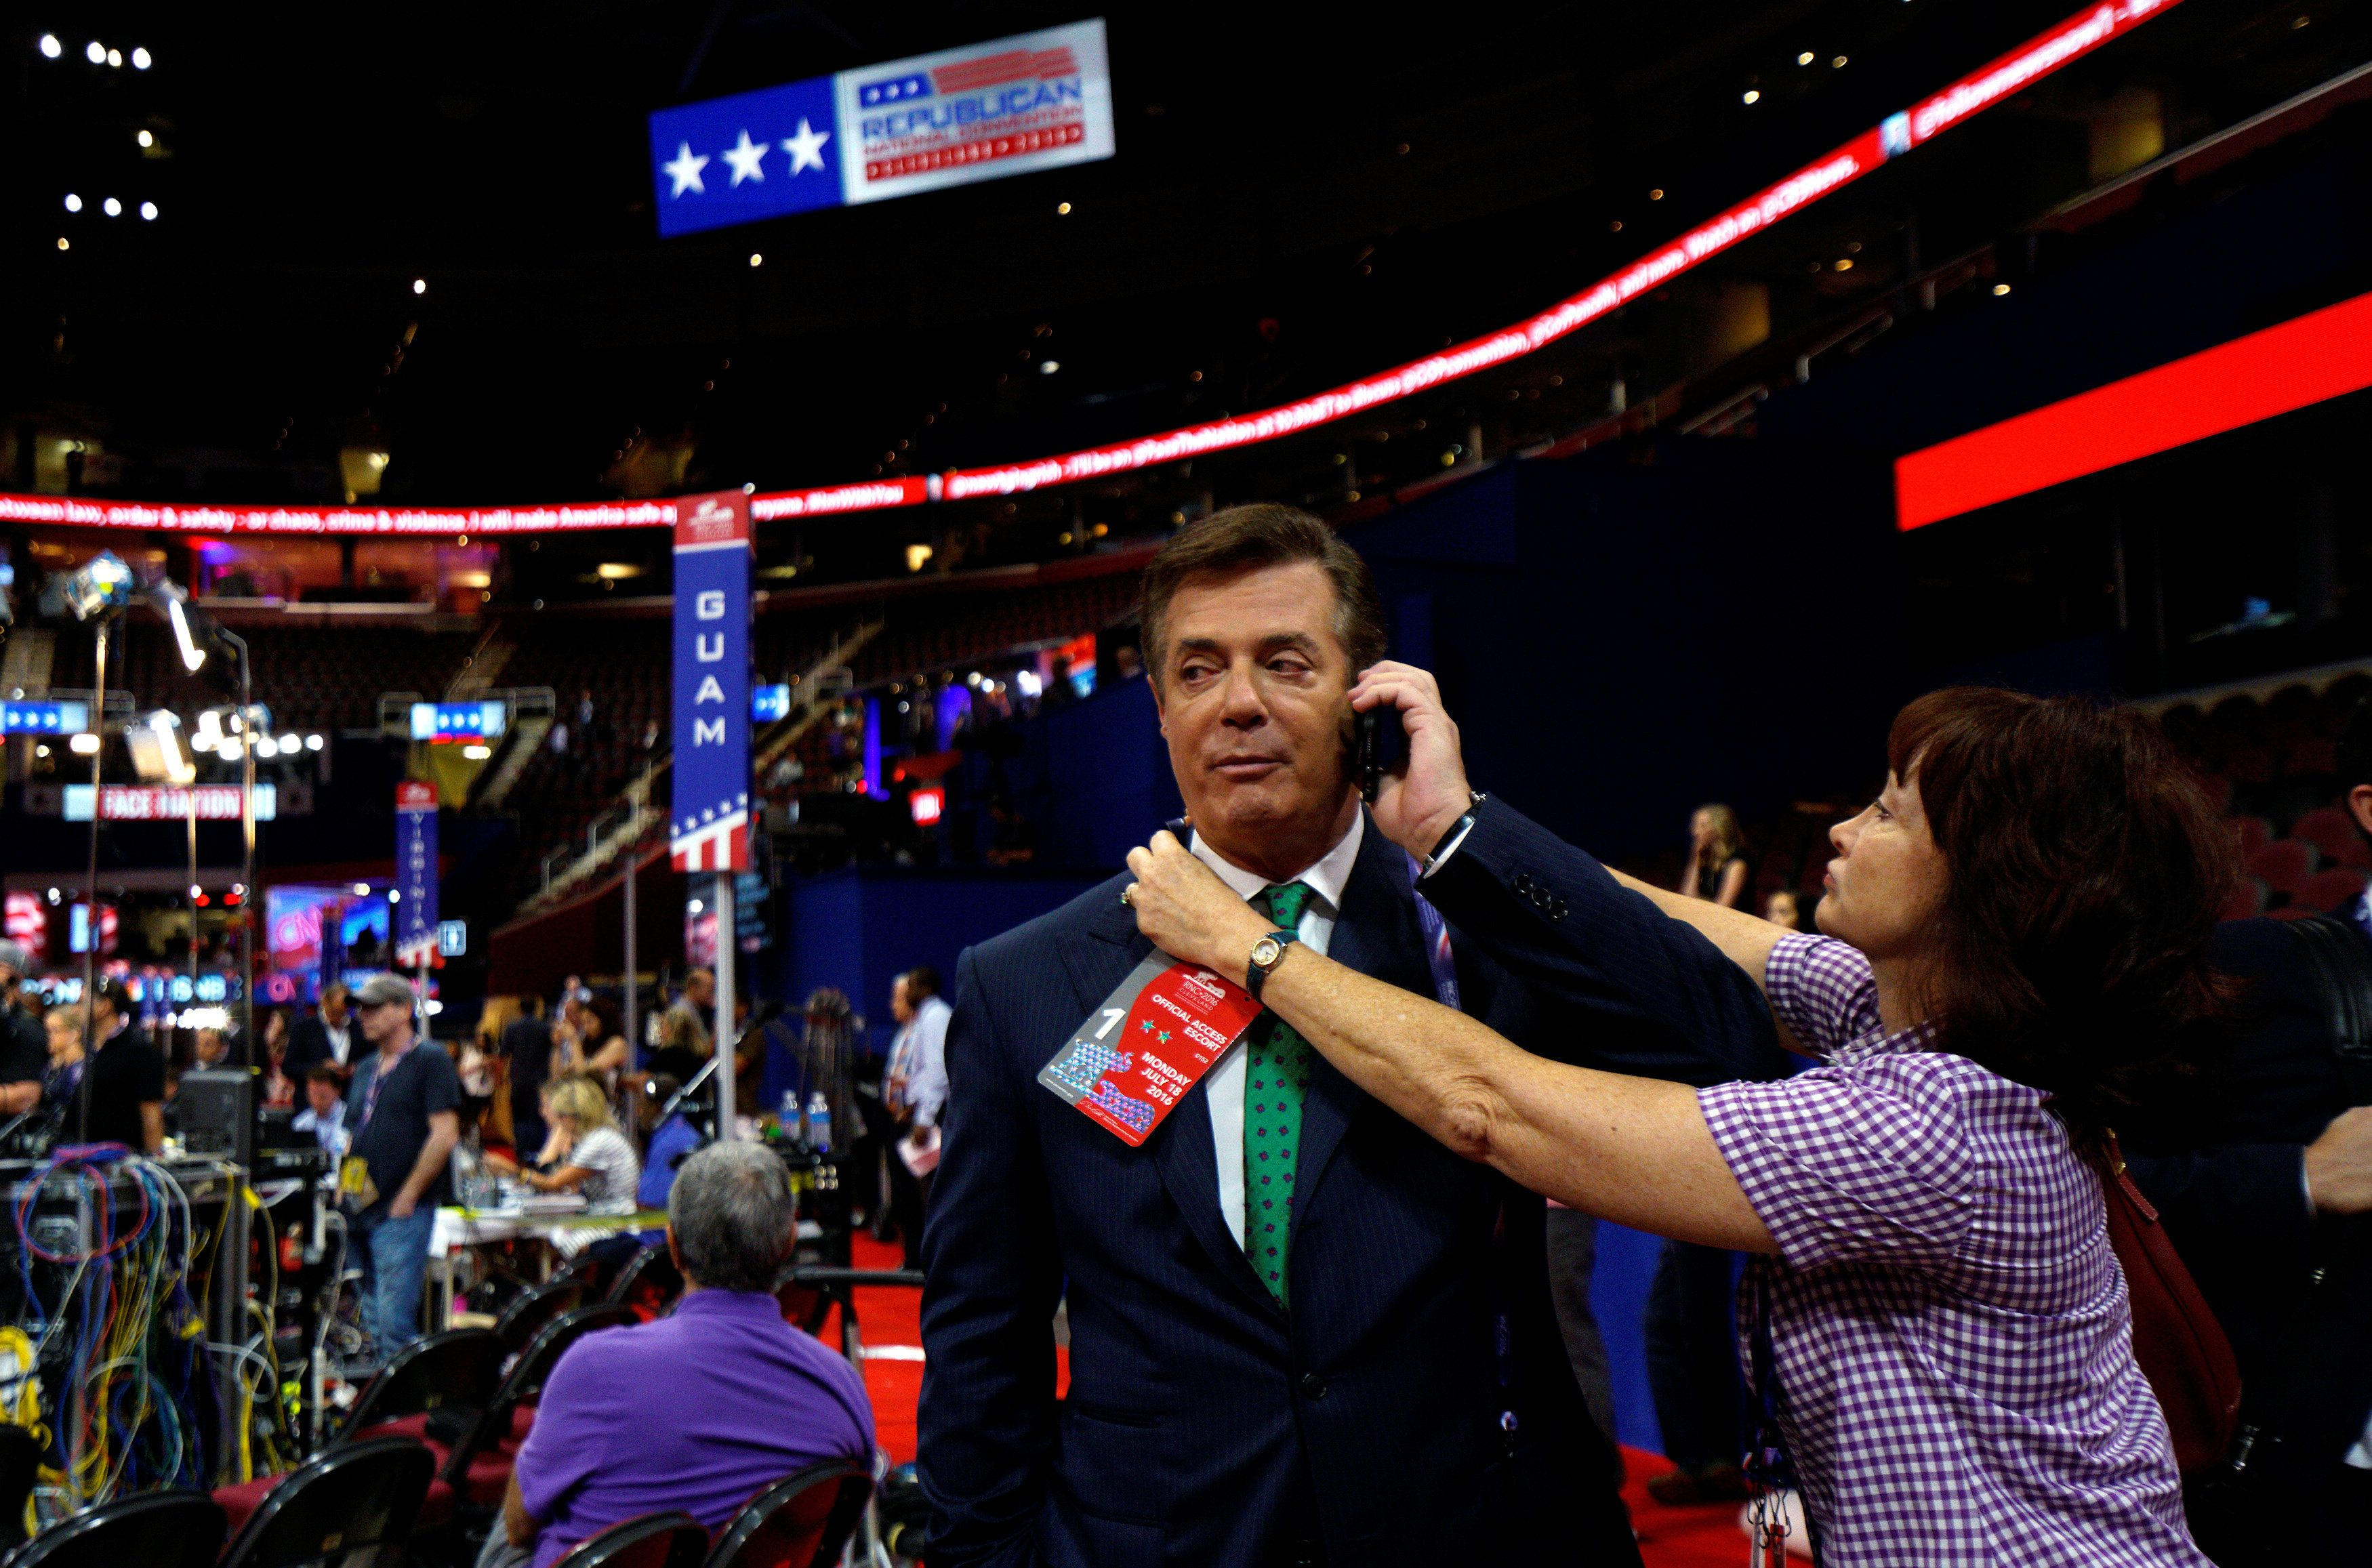 Kathleen Manafort tries to put a credential on her husband Paul Manafort, campaign manager to Republican Presidential Candidate Donald Trump, as he talks on the phone from the floor of the Republican National Convention in Cleveland, U.S., July 17, 2016.  REUTERS/Rick Wilking